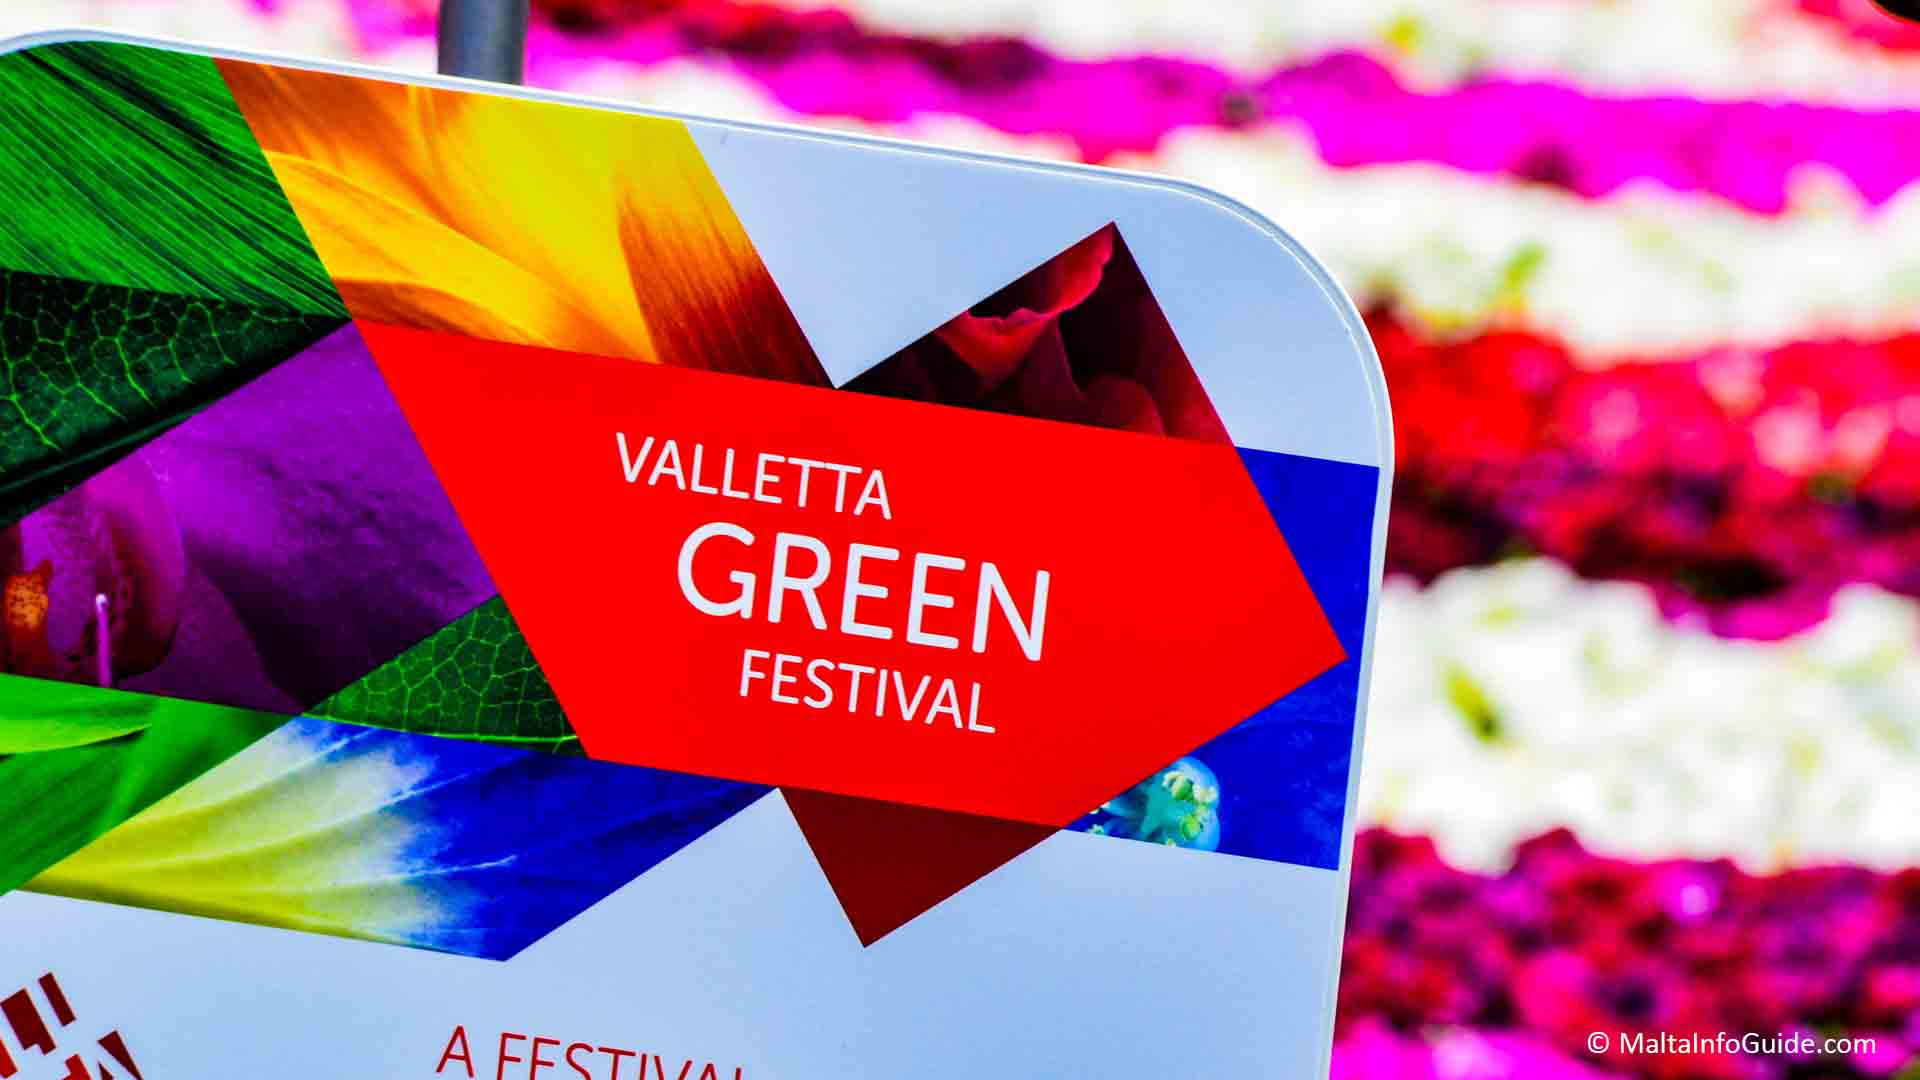 Valletta Green Festival carpet with 80,000 flower pots at St. George's Square